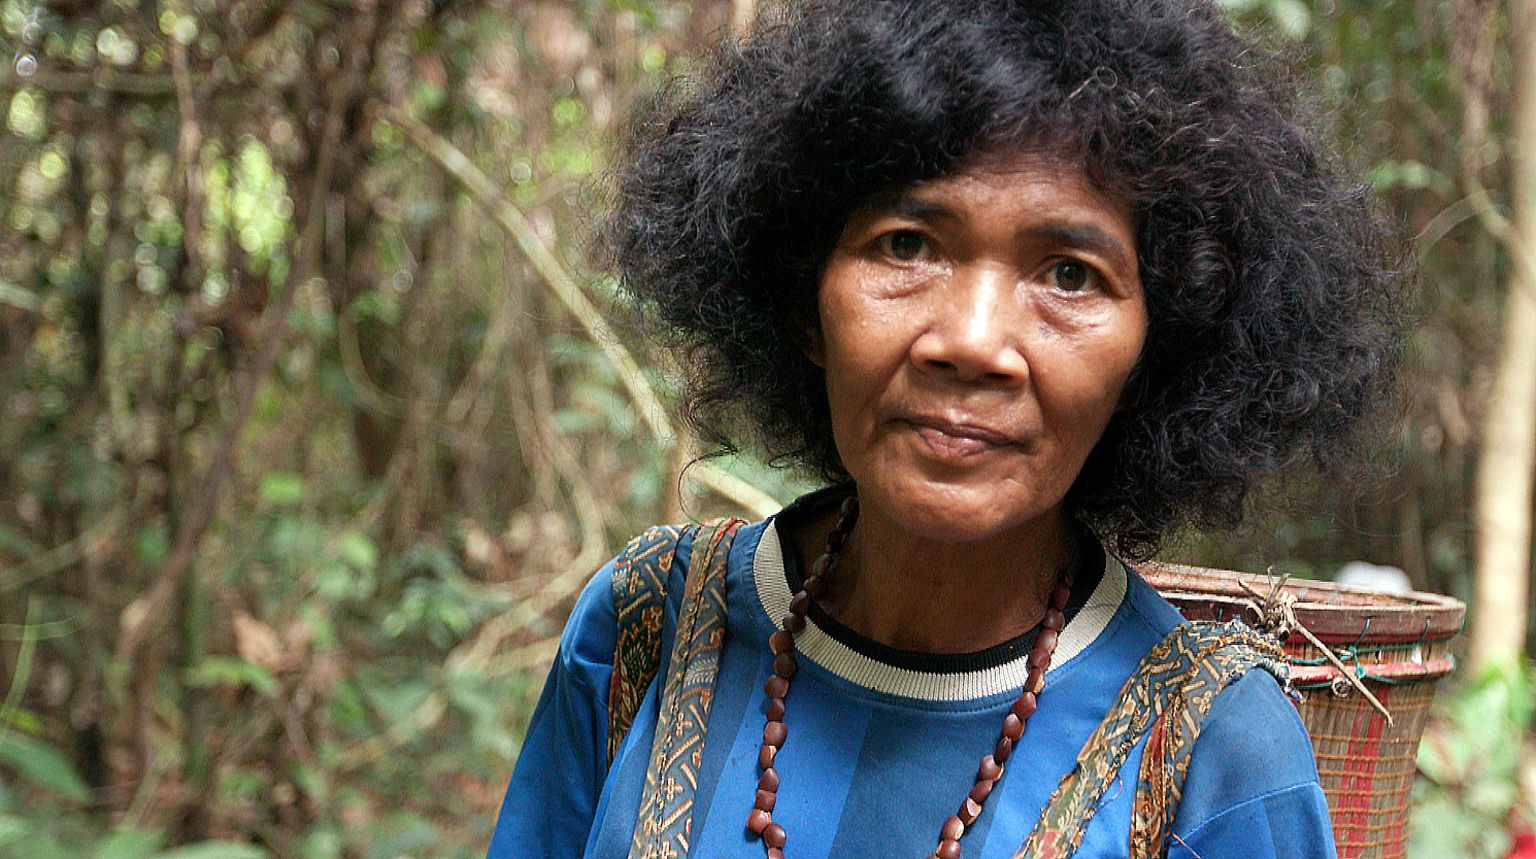 An Orang Rimba woman in the forest